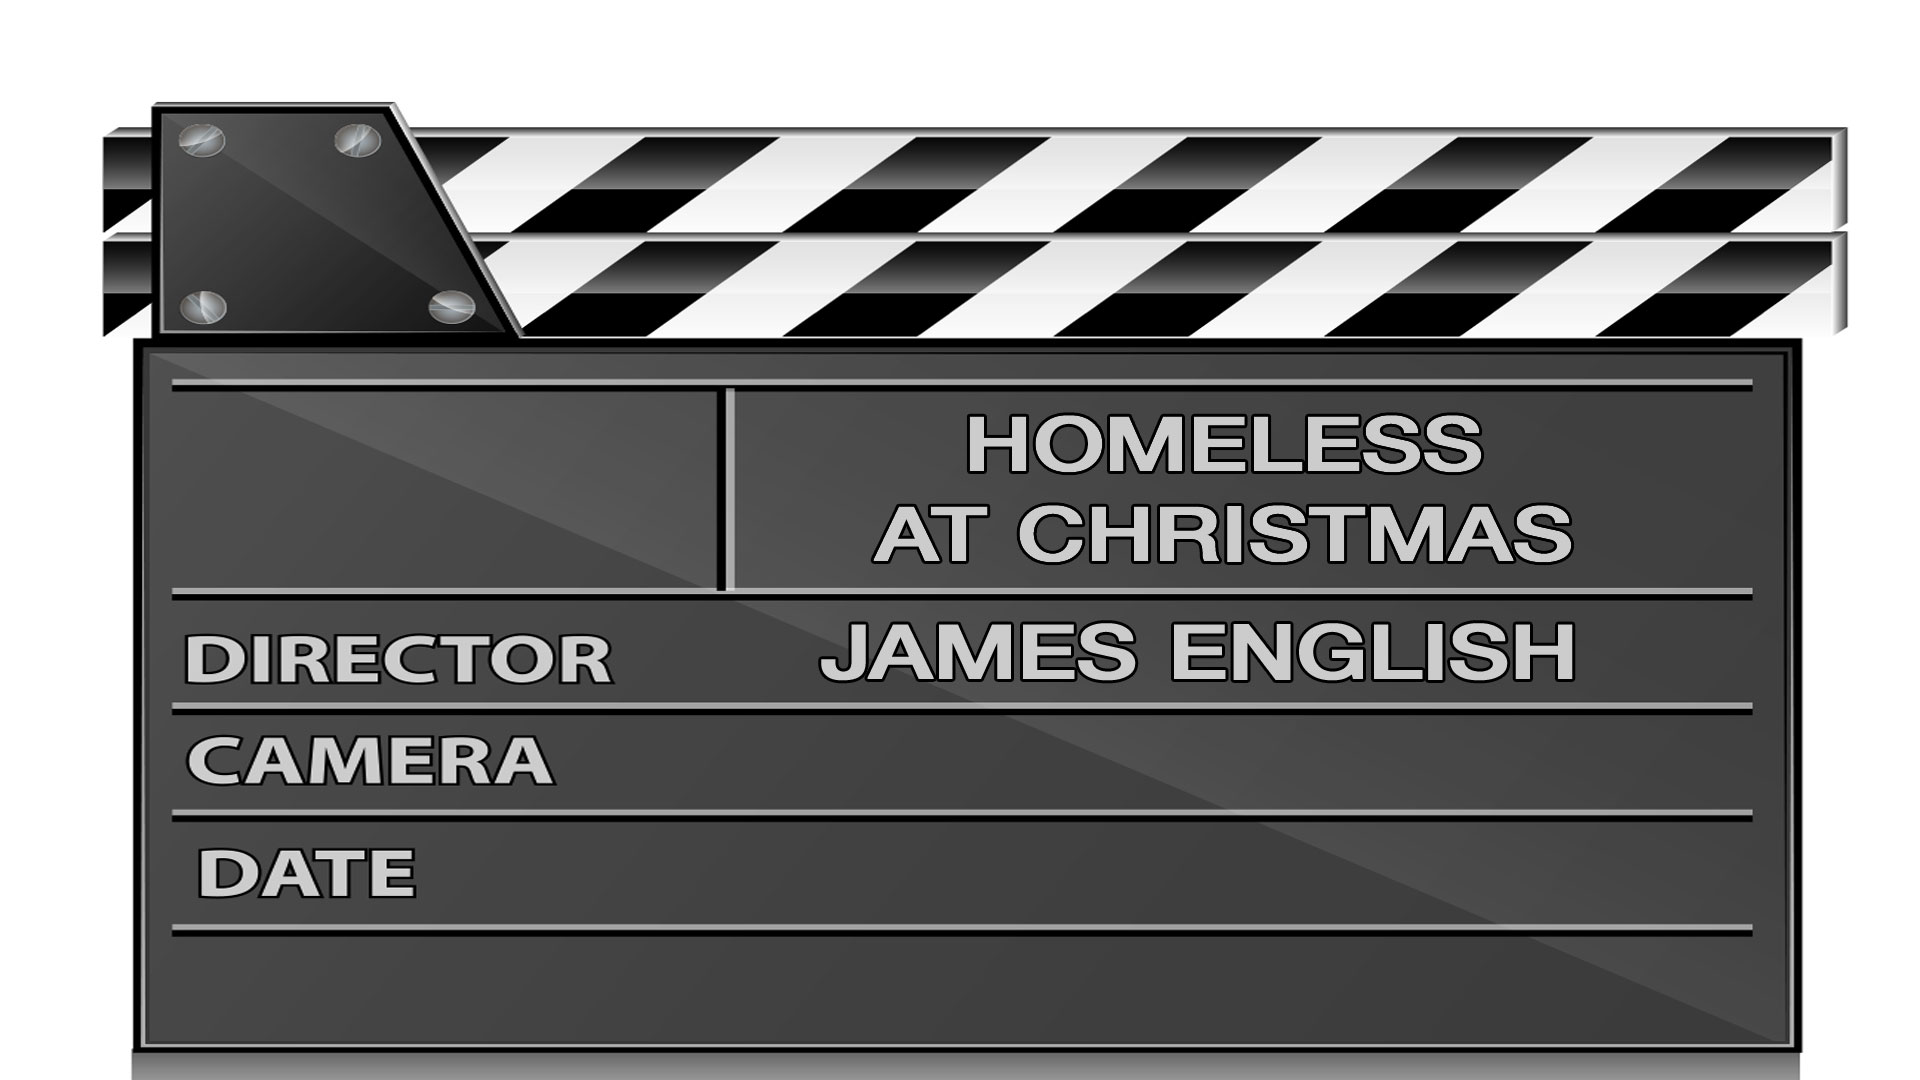 Homeless at Christmas by James English